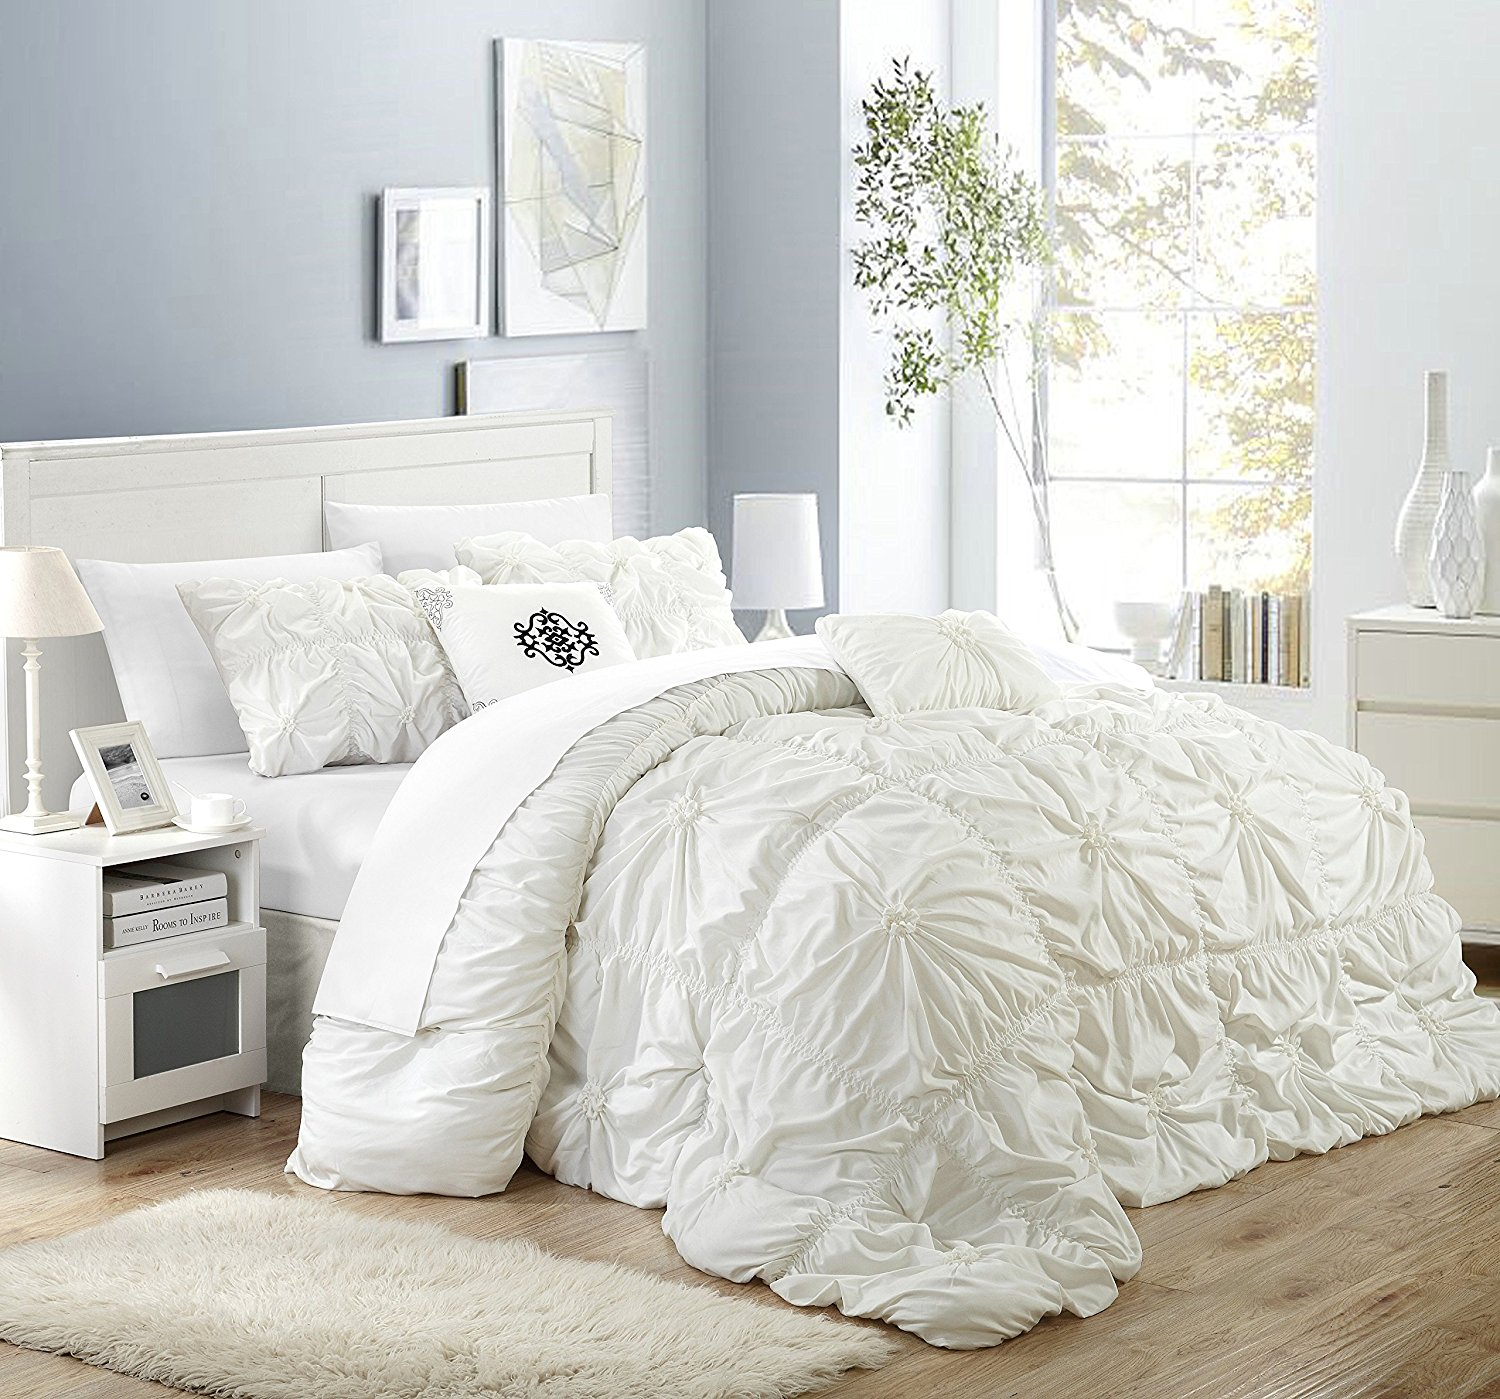 free photo white bed comforter bed